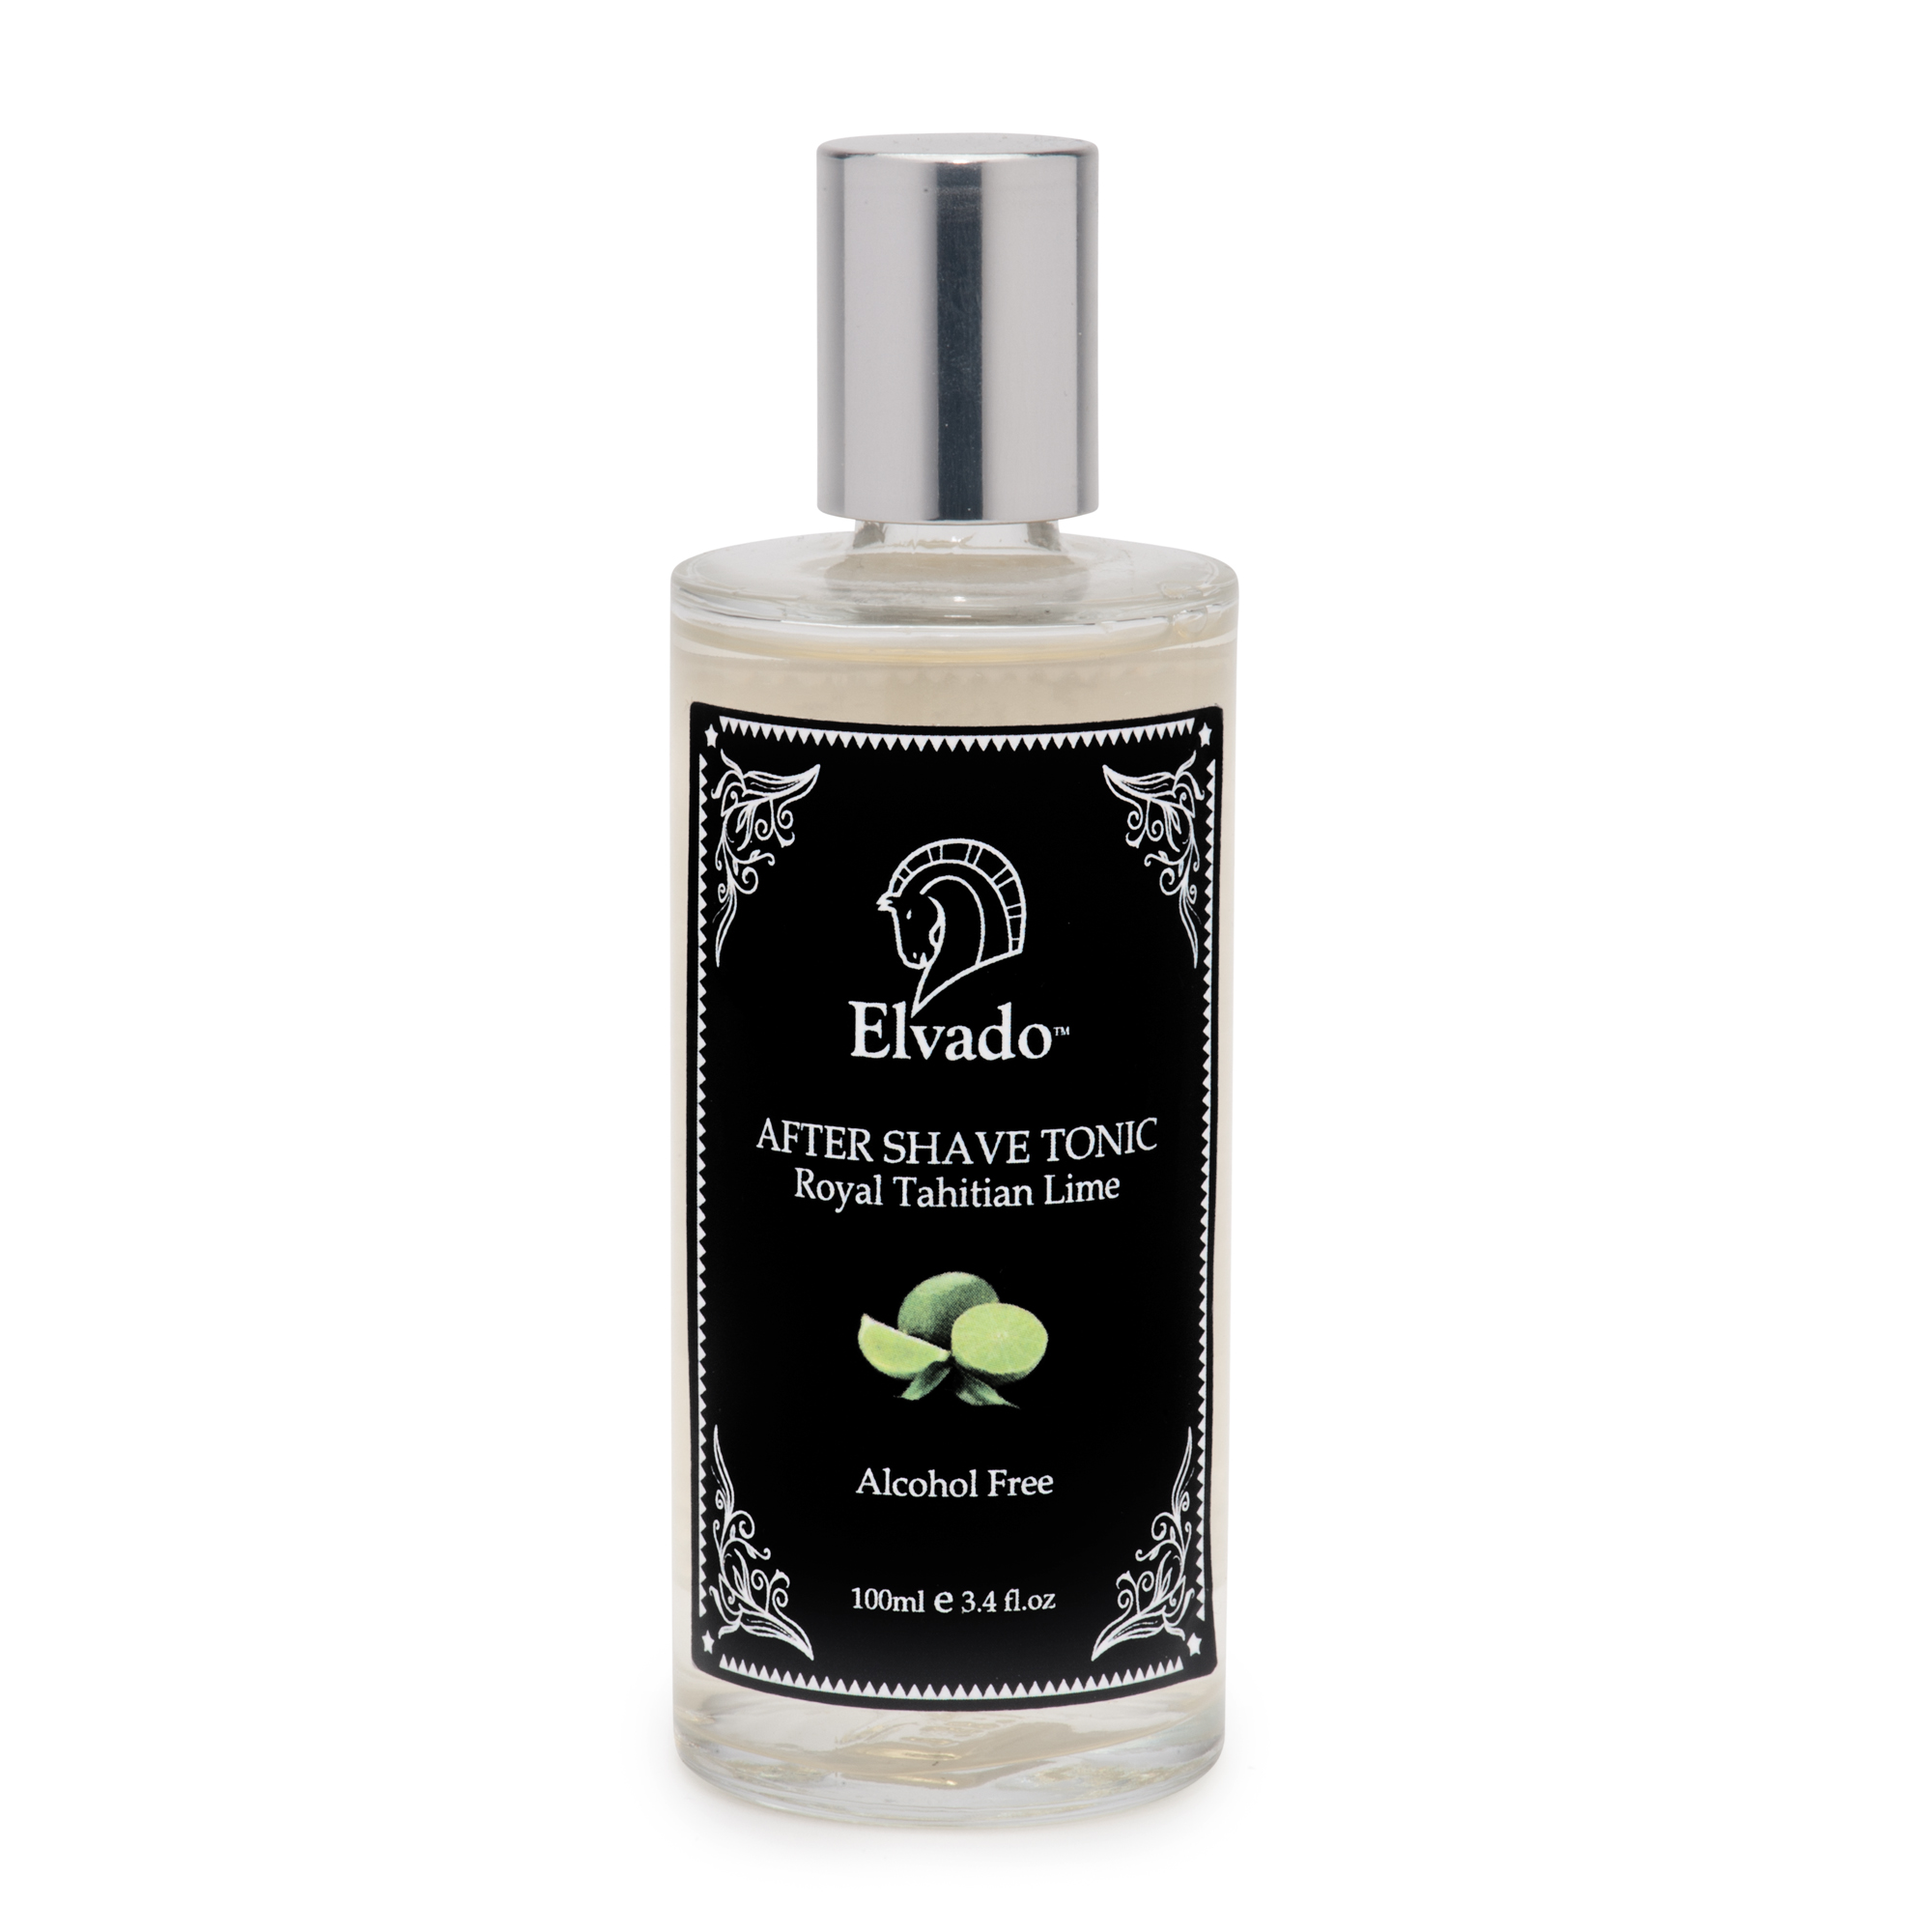 Elvado - Royal Tahitian Lime - Aftershave (Alcohol Free) image